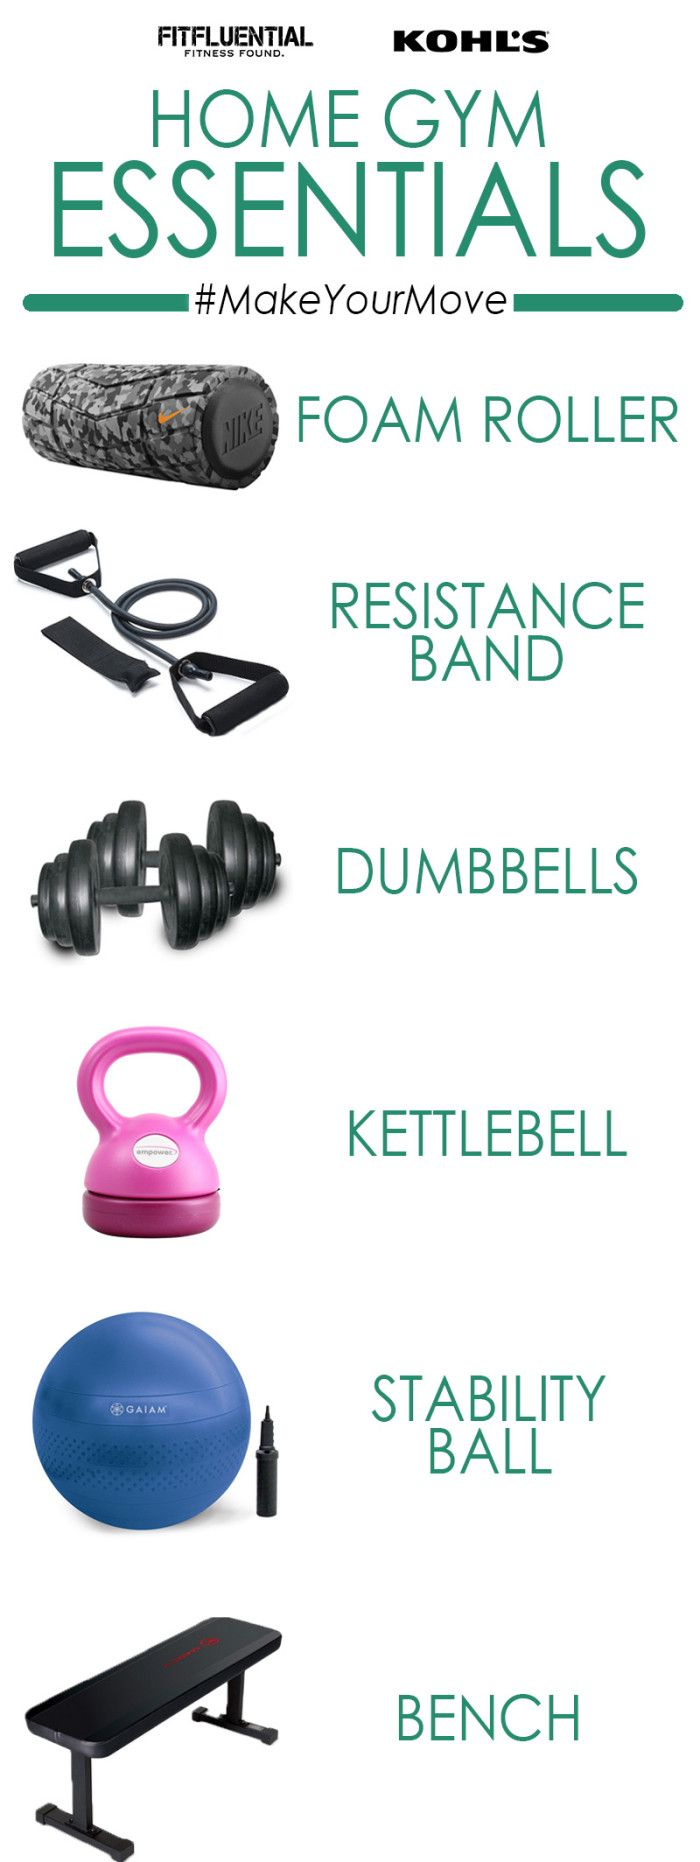 Get your sweat on at home! #MakeYourMove with home workout essentials sponsored by @Kohls